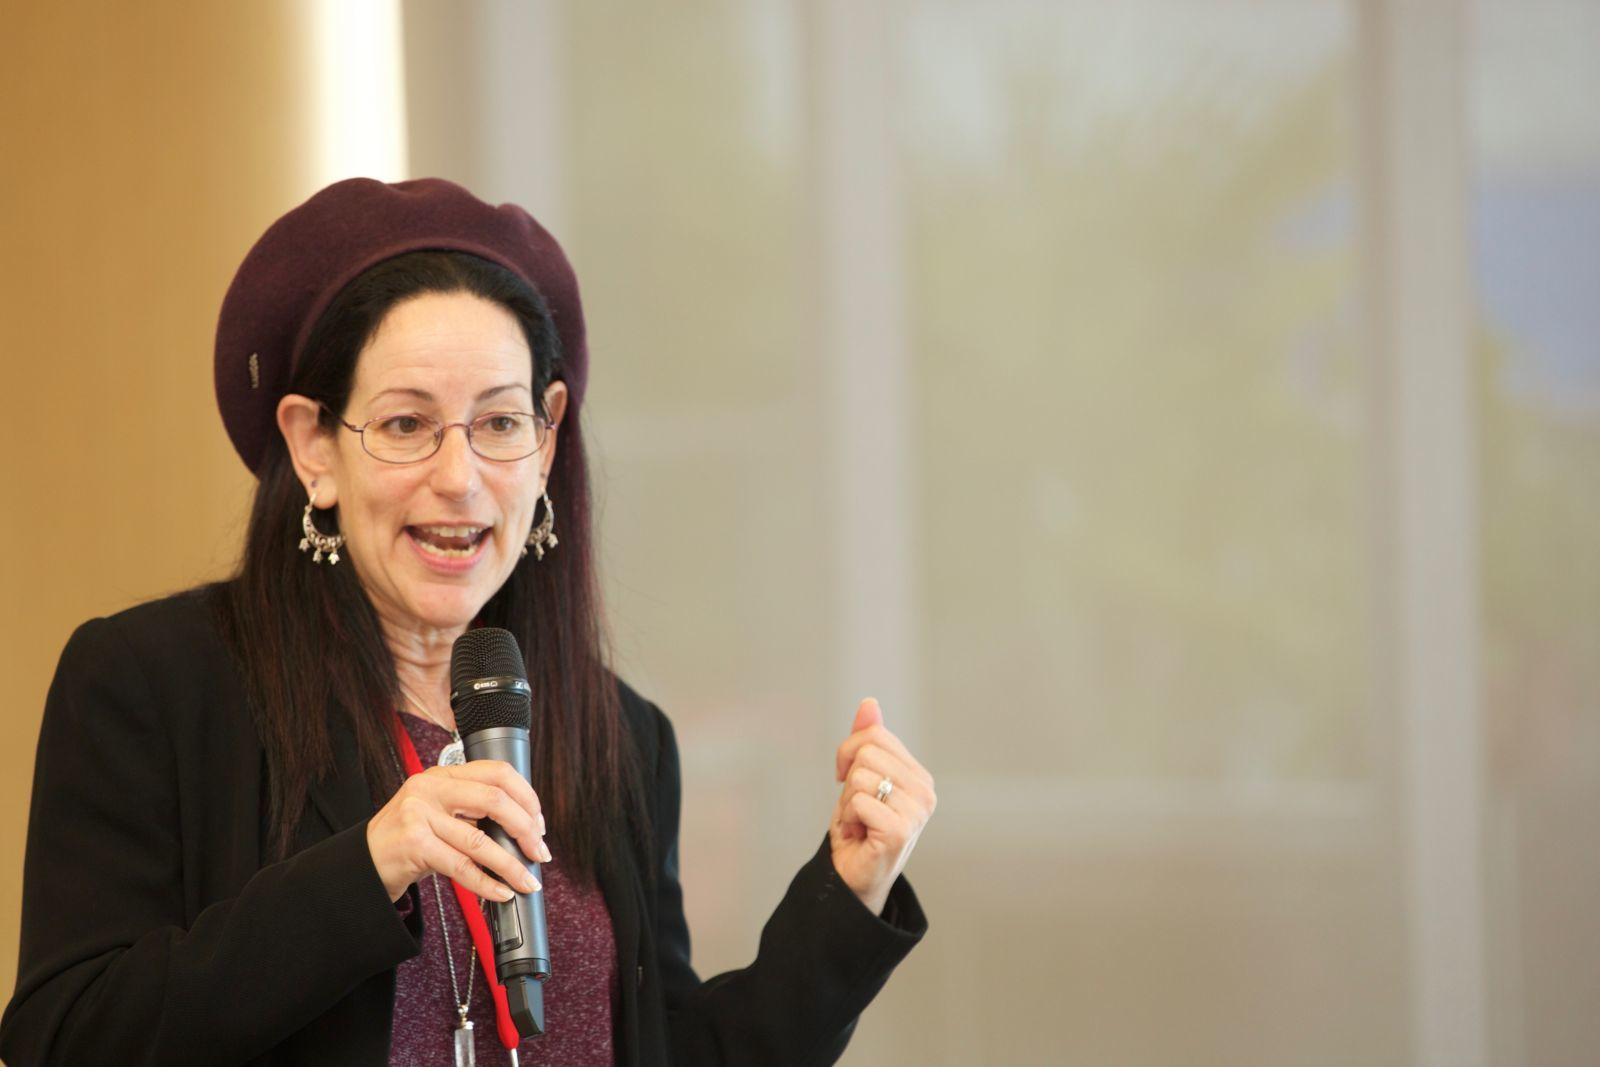 Rabbi Laura Duhan Kaplan